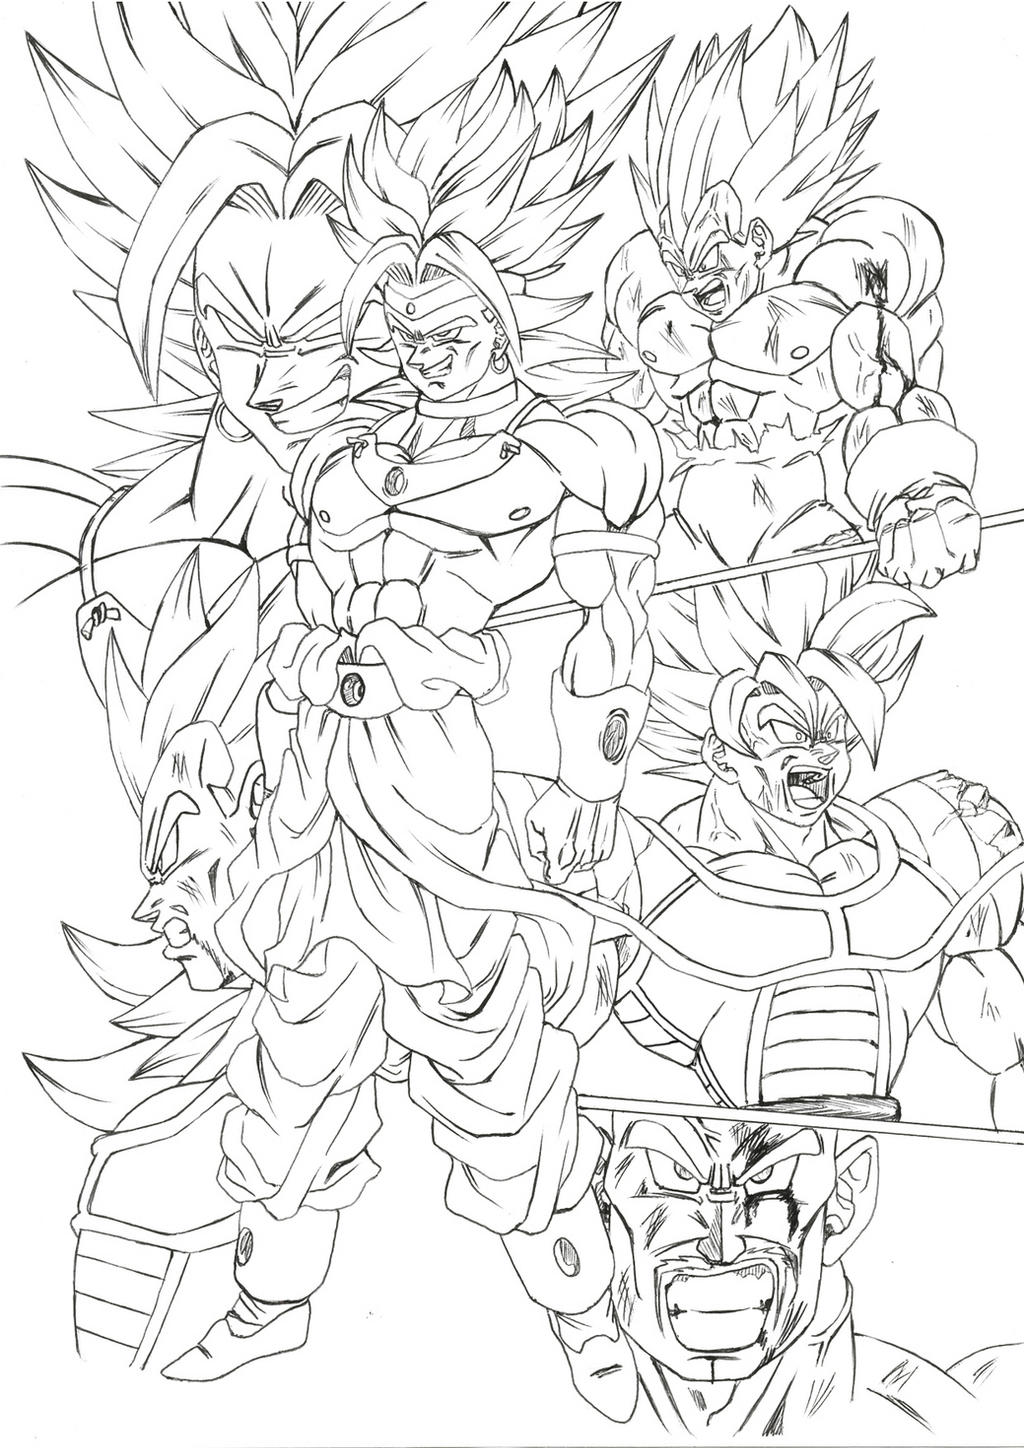 broly coloring pages - photo#25